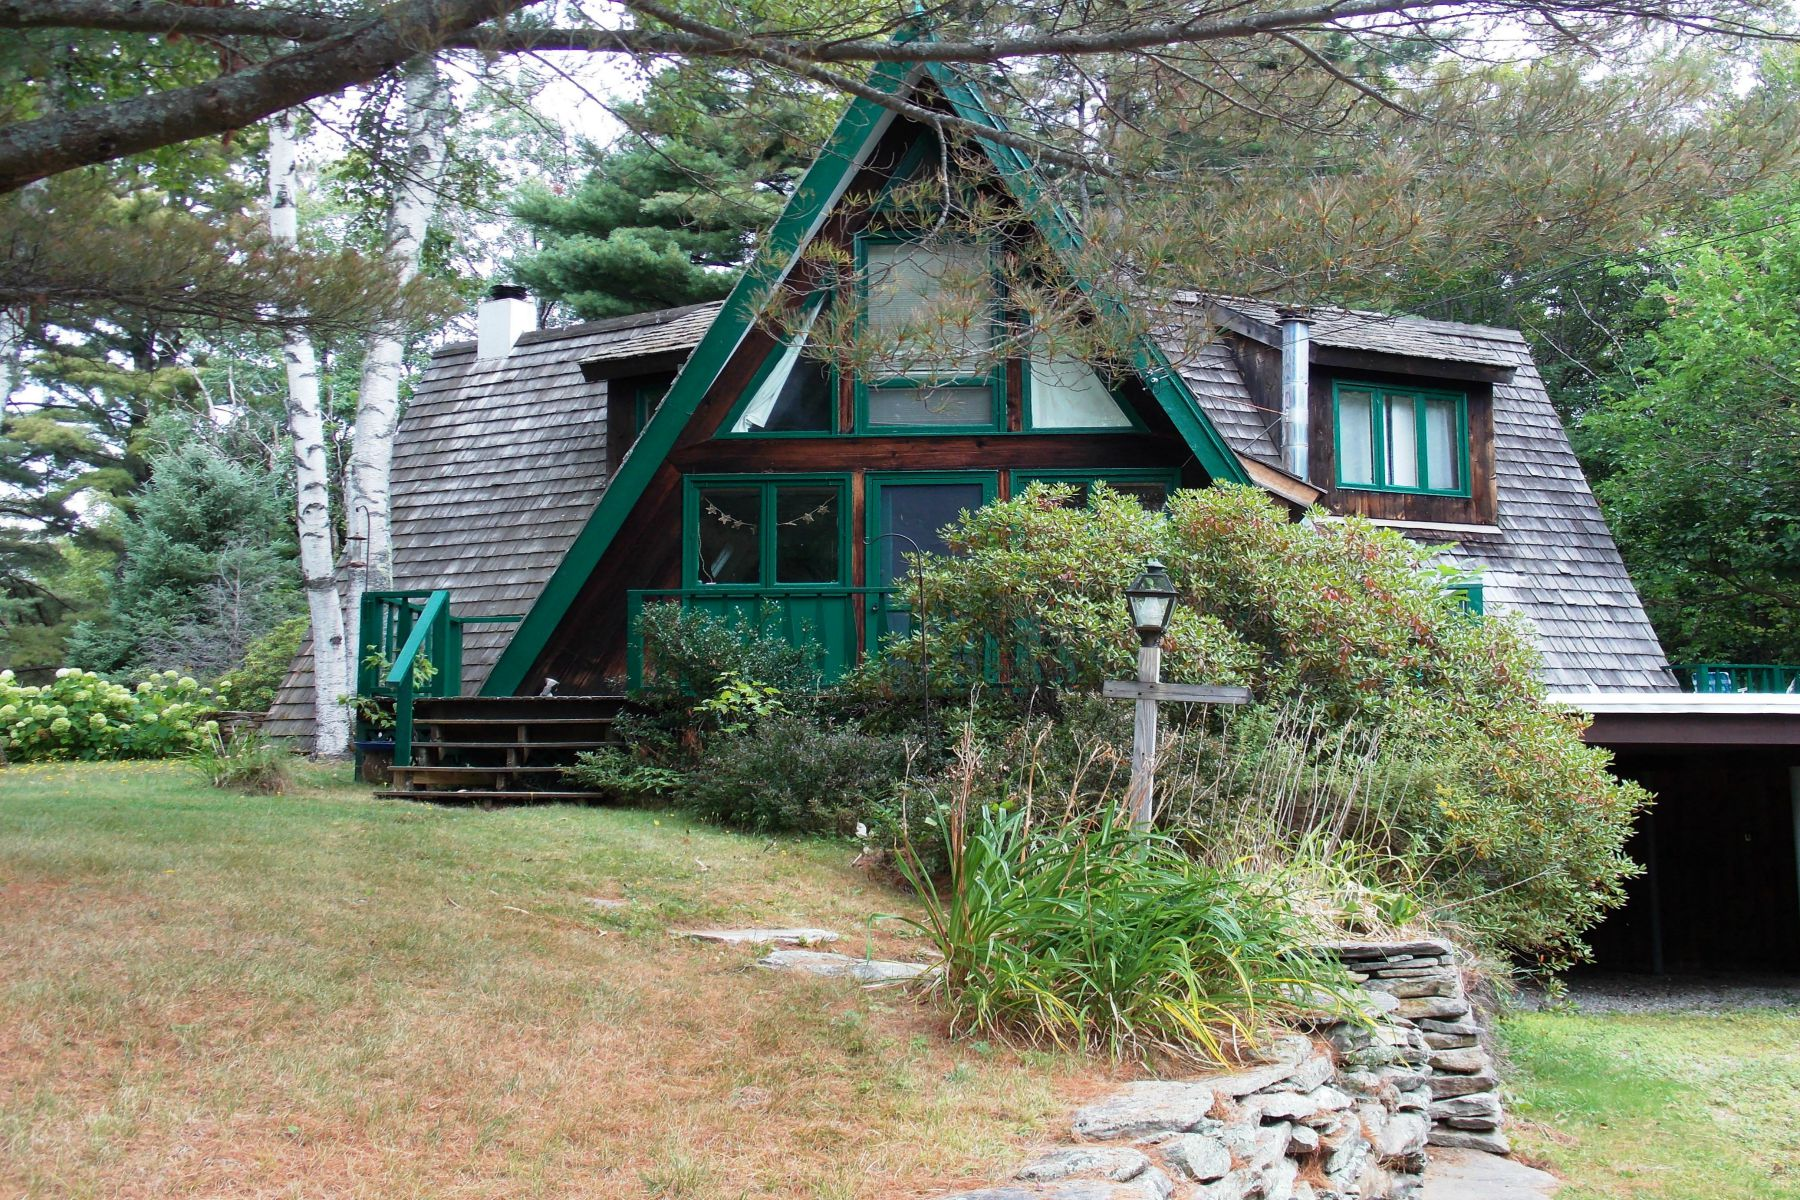 Single Family Home for Sale at 15 Lake Rd, Winhall Winhall, Vermont, 05340 United States